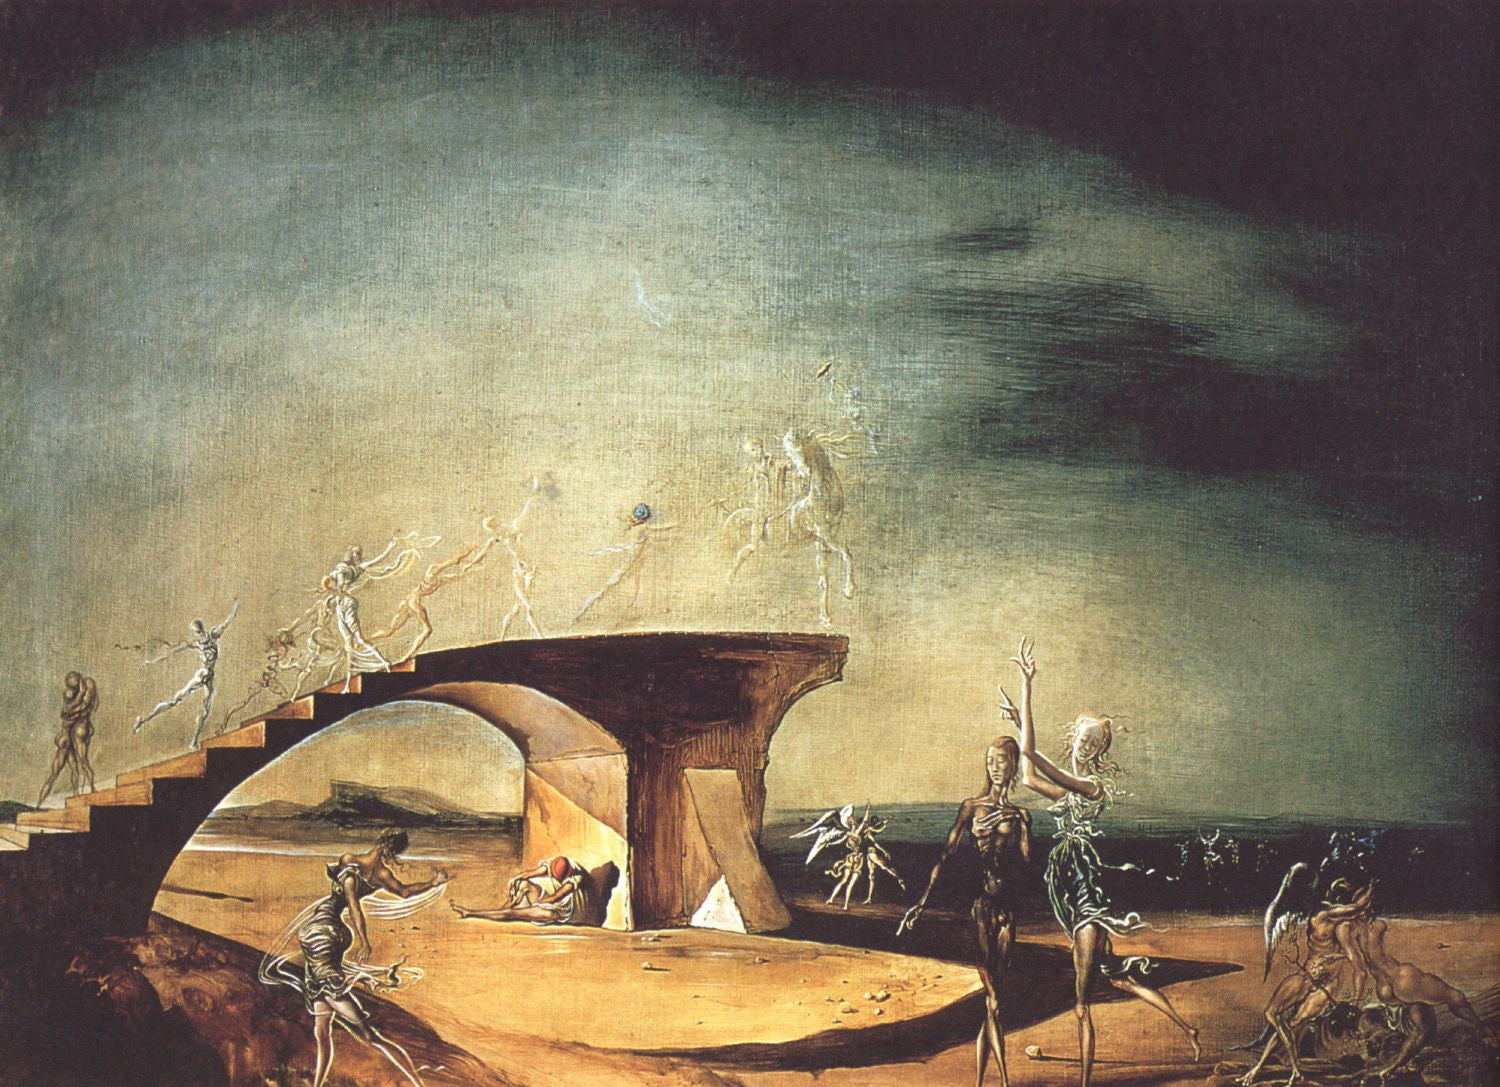 The Broken Bridge and the Dream - Framed Prints by Salvador Dali ...